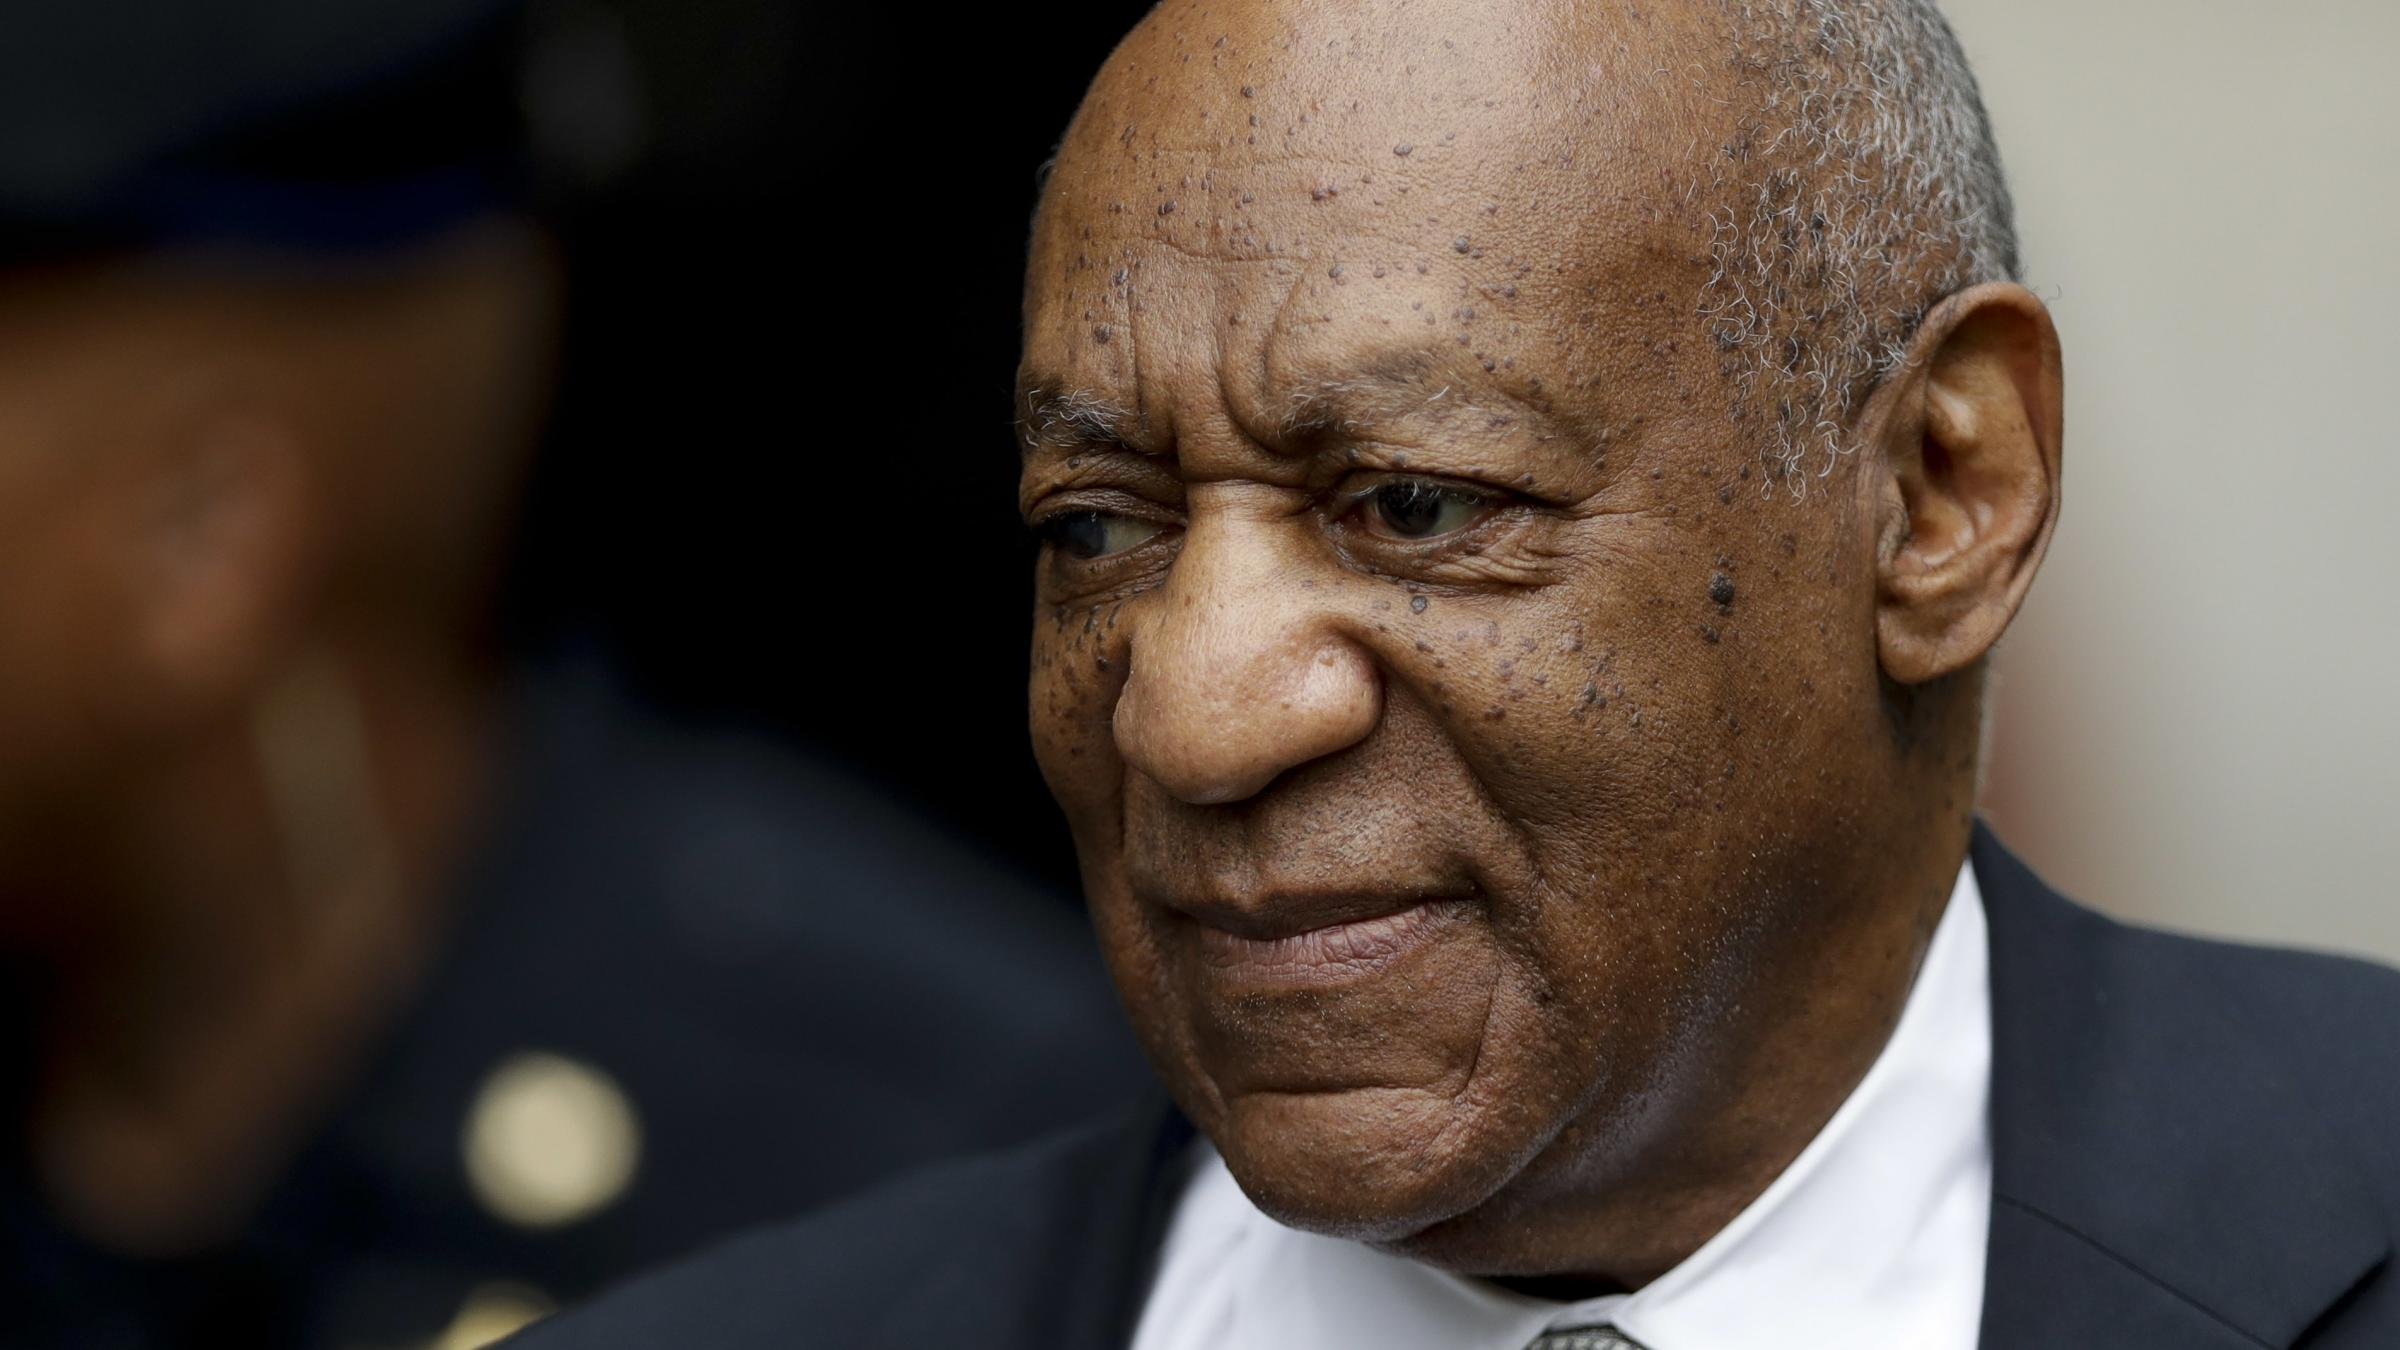 Hollywood reacts to Bill Cosby mistrial